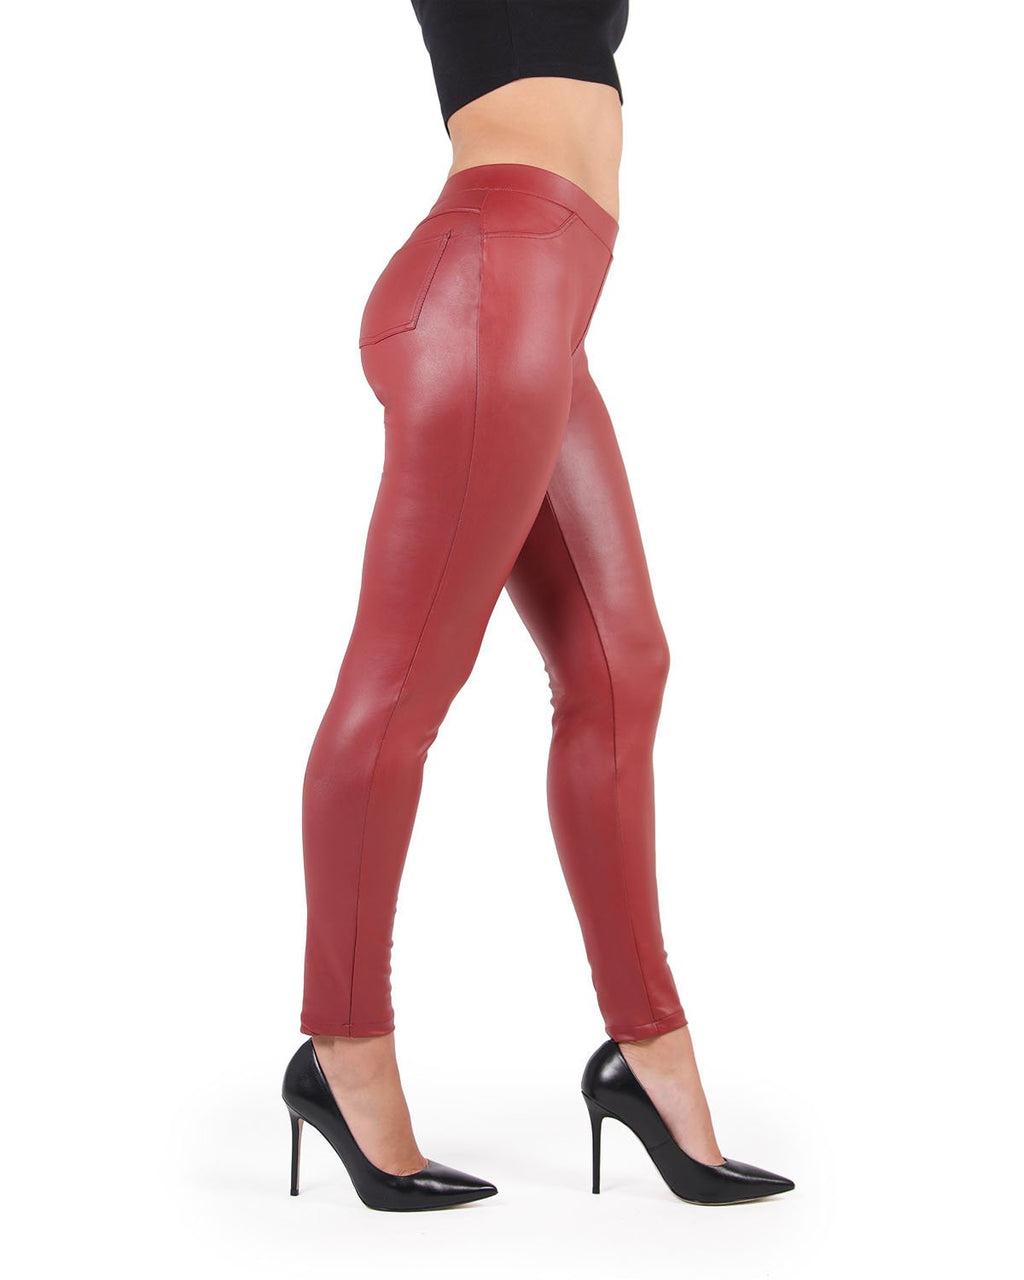 Feather Red Faux Leather Legging | MeMoi Women's Vegan / Faux Leather Leggings (Side View) | Pants - Trousers